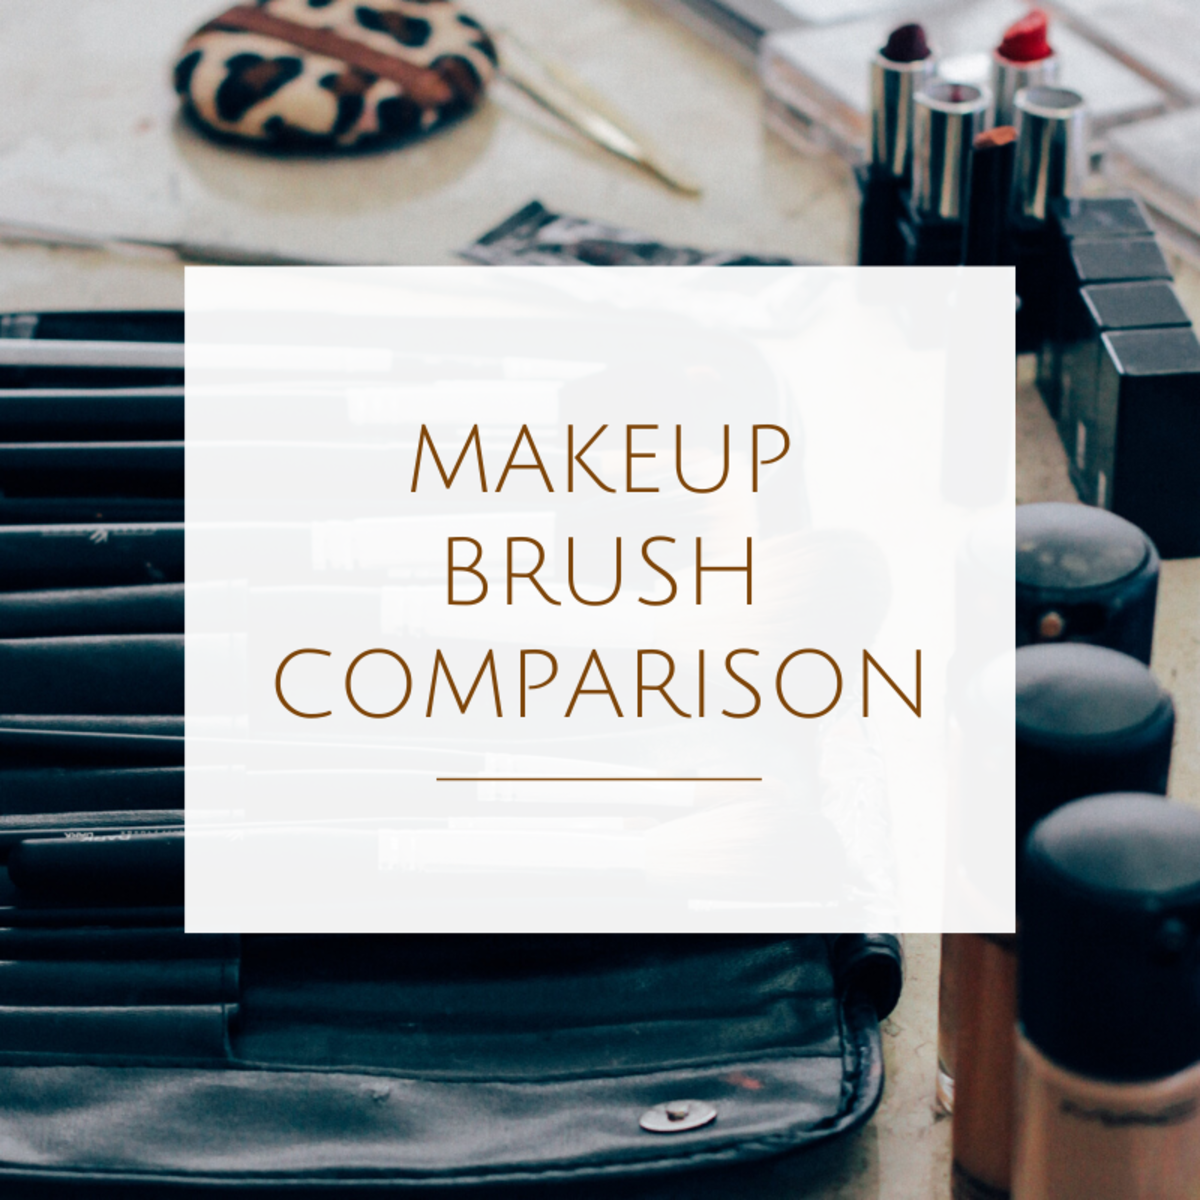 Read on to learn tips and tricks for choosing the right makeup brush.